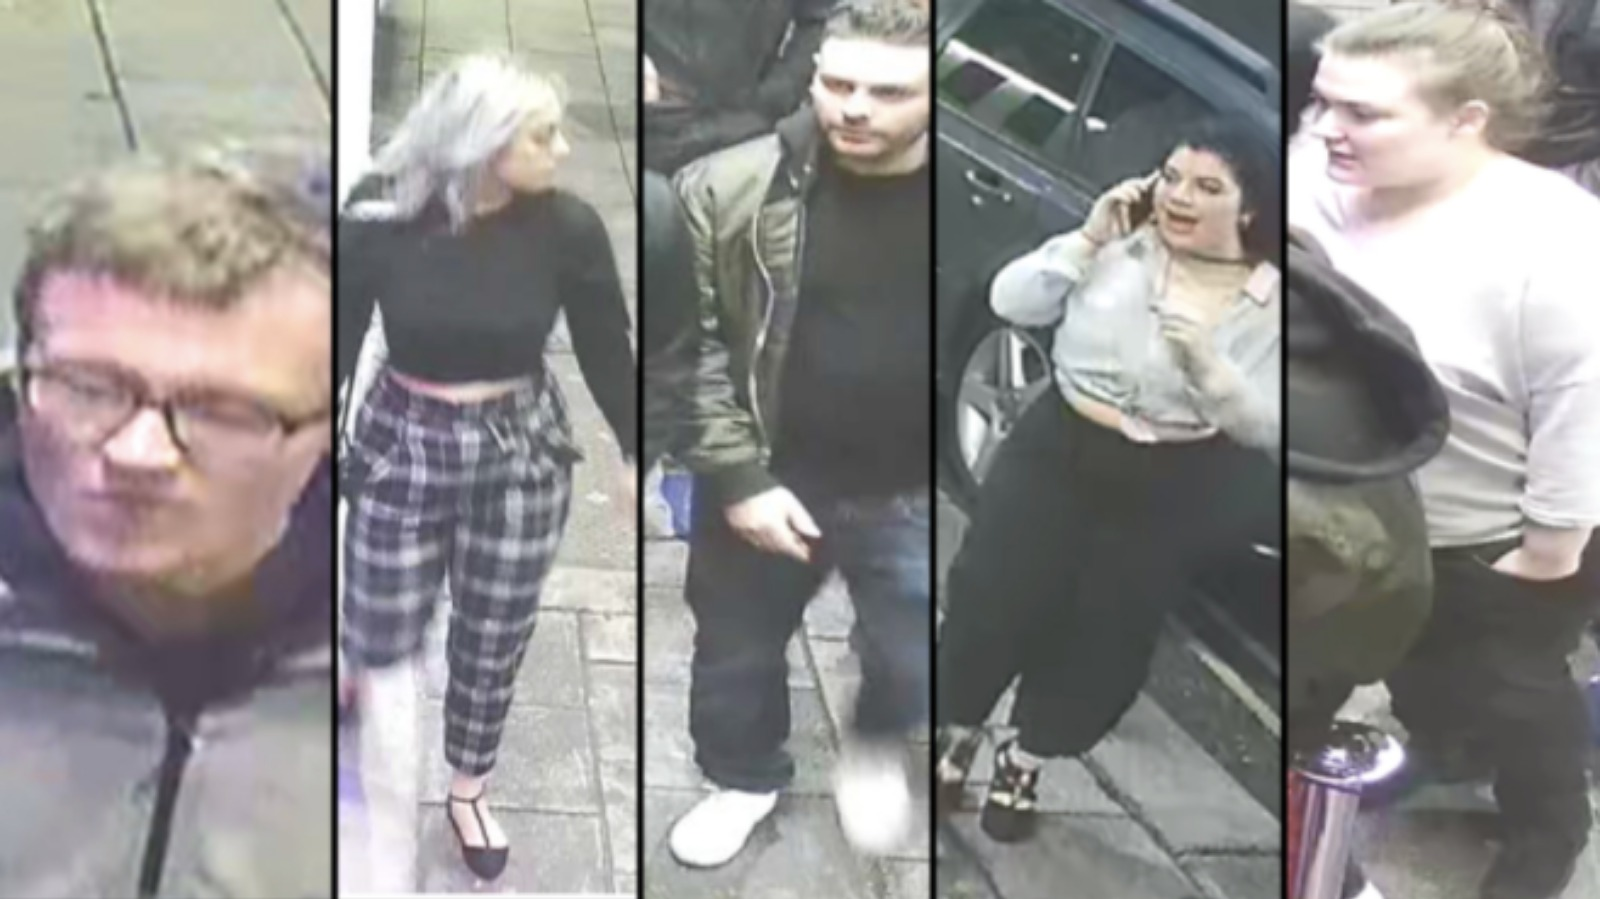 Chesterfield bar death appeal: Police release images of potential witnesses  | Calendar | ITV News